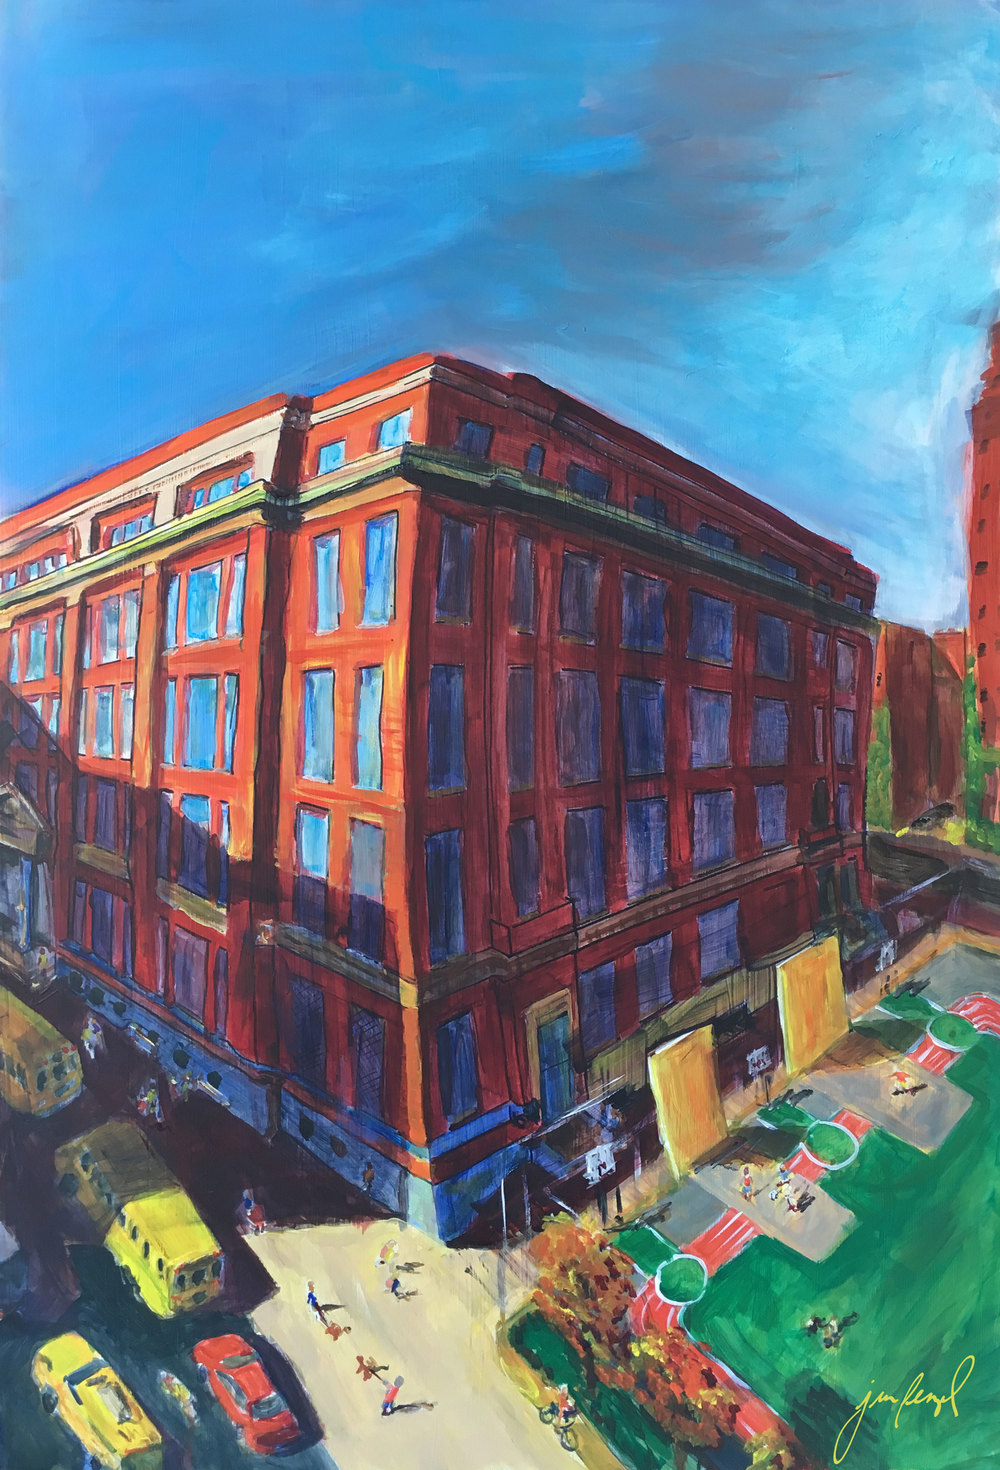 Ella Baker School, NYC (More info about the auction for this piece coming soon)